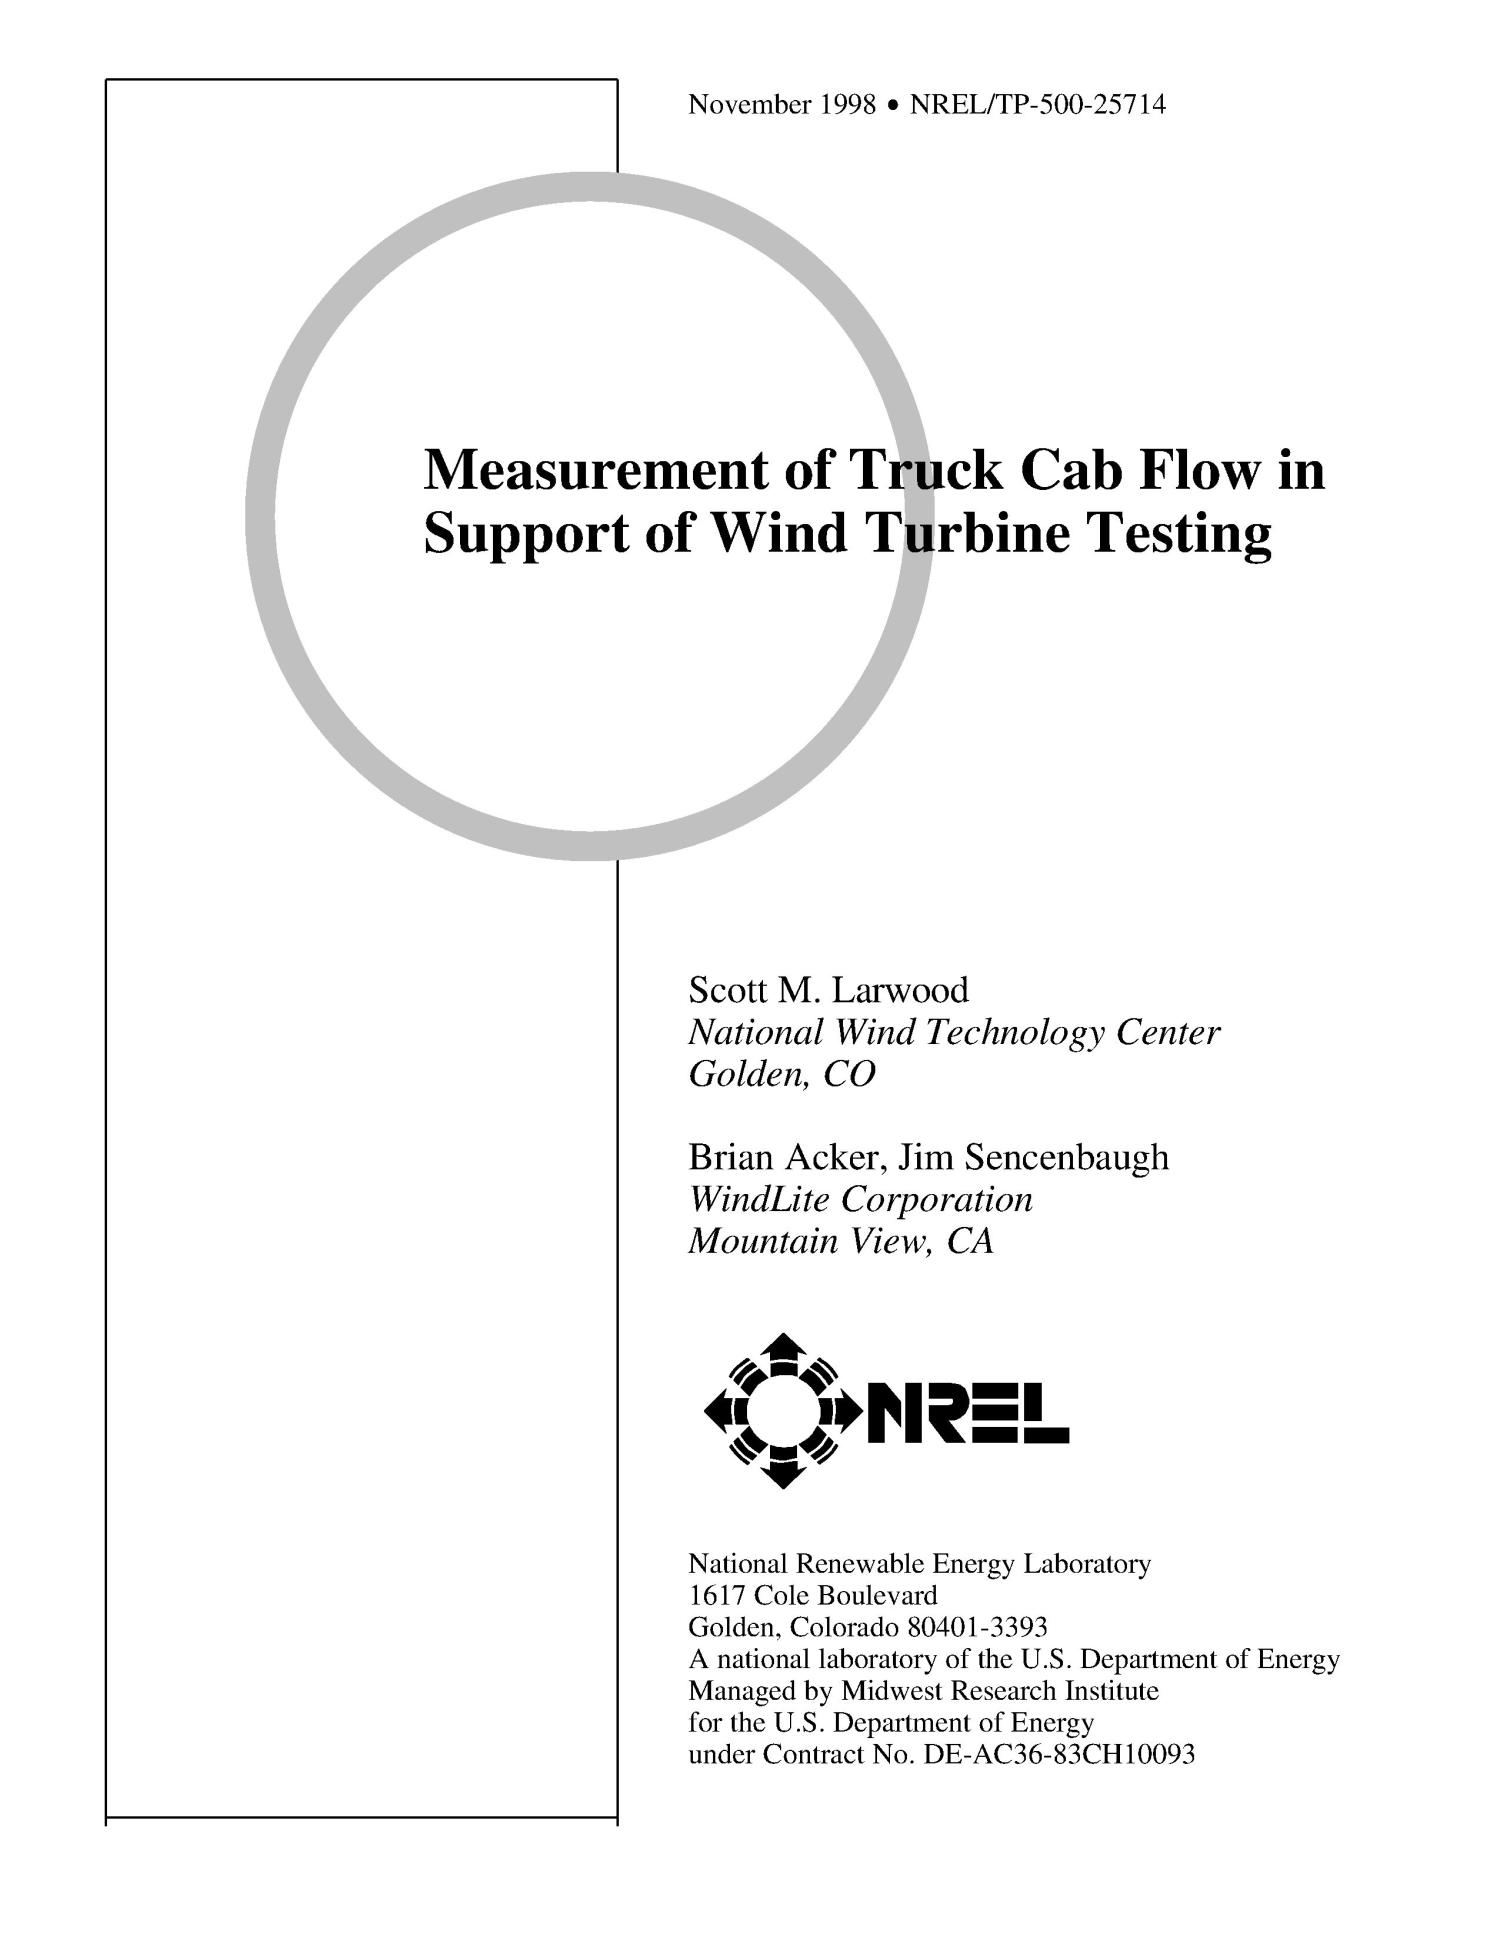 Measurement of Truck Cab Flow in Support of Wind Turbine Testing                                                                                                      [Sequence #]: 1 of 18